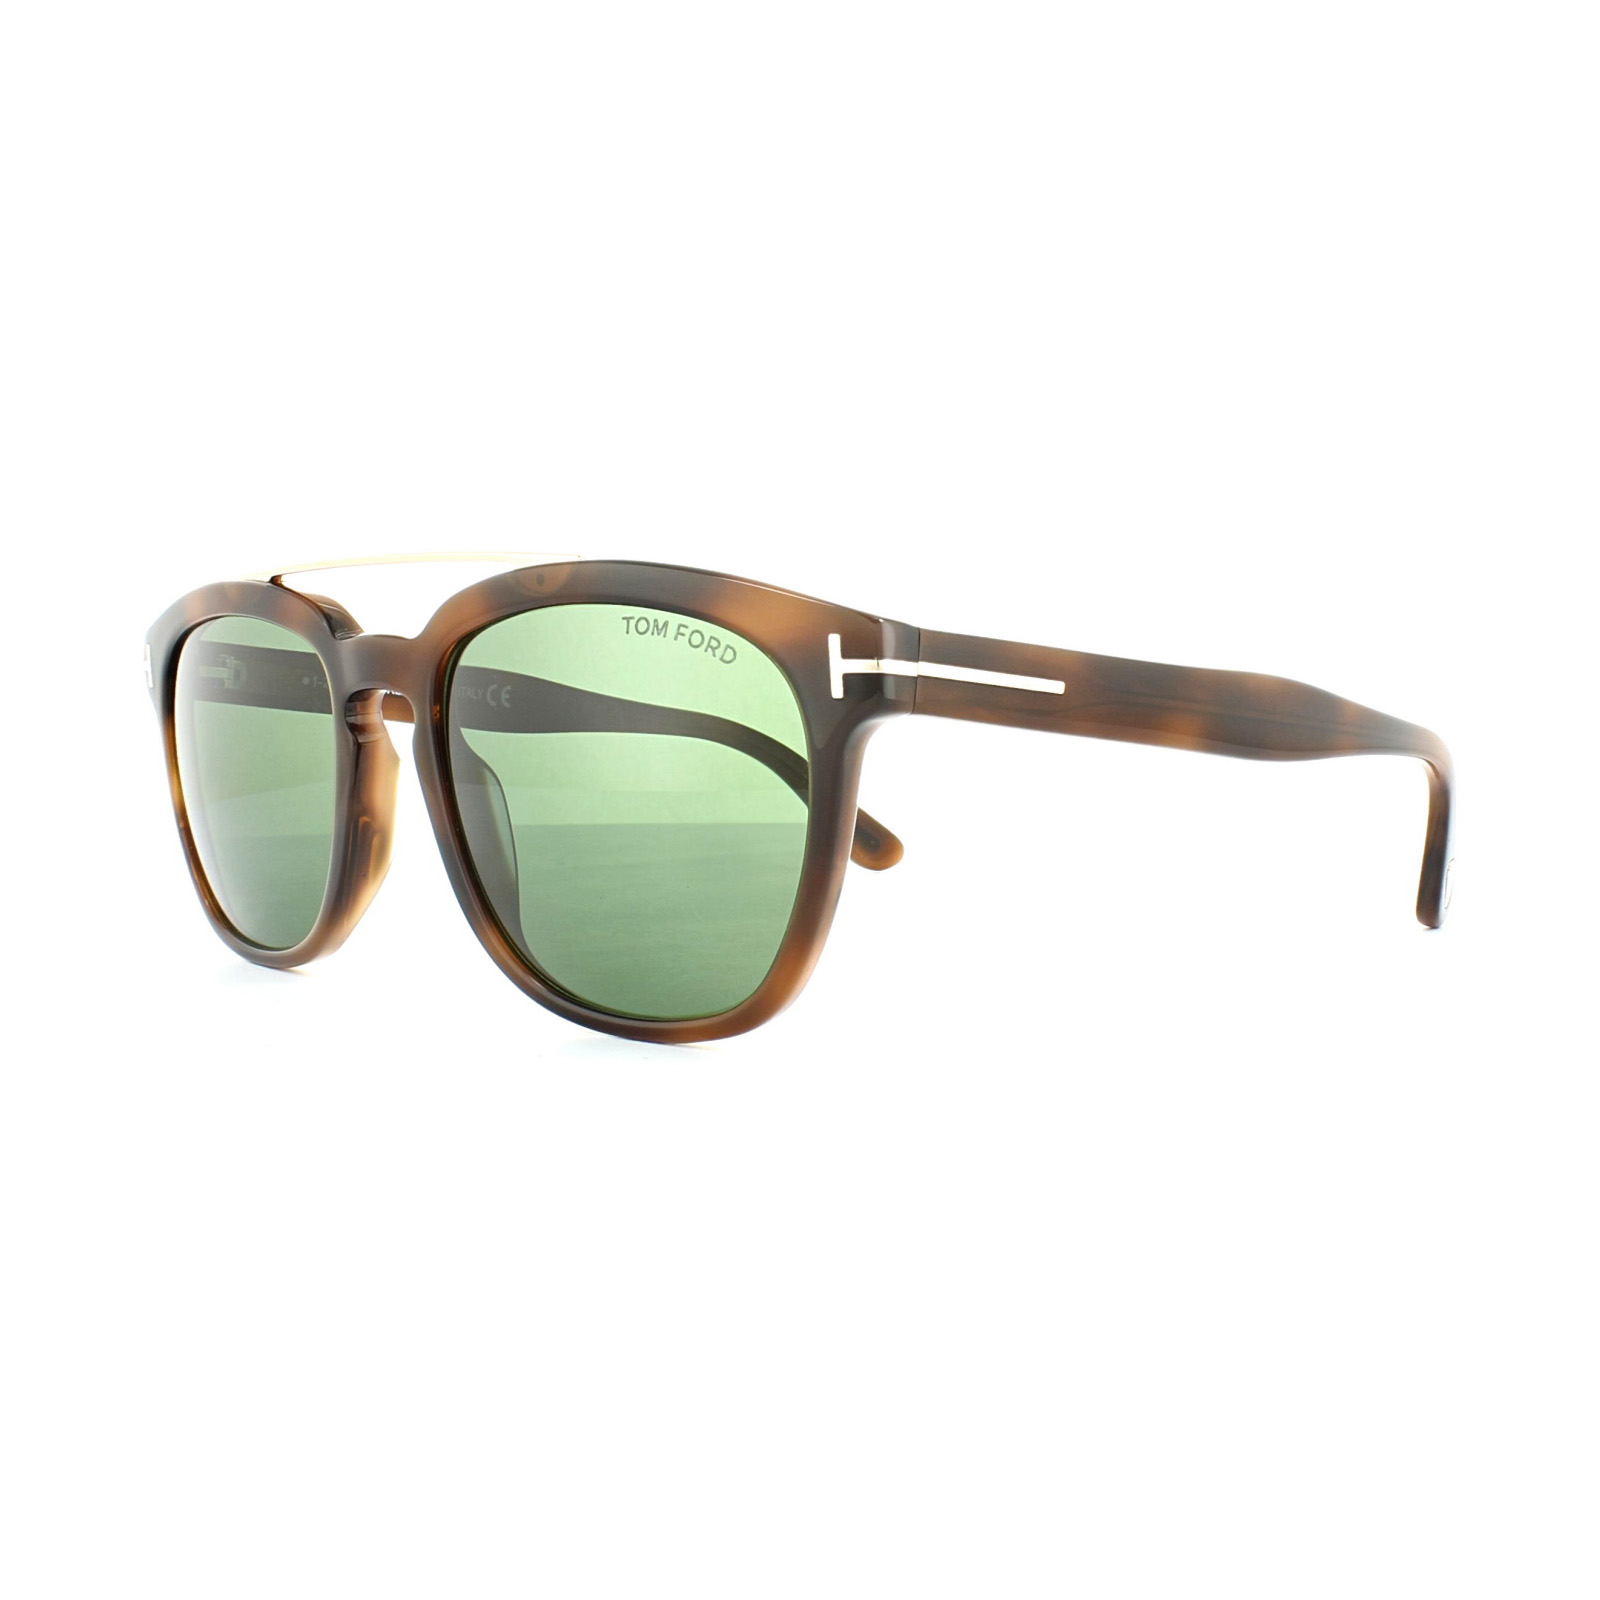 218060a654 Tom Ford Sunglasses 0516 Holt 53N Blonde Havana Green 664689829590 ...